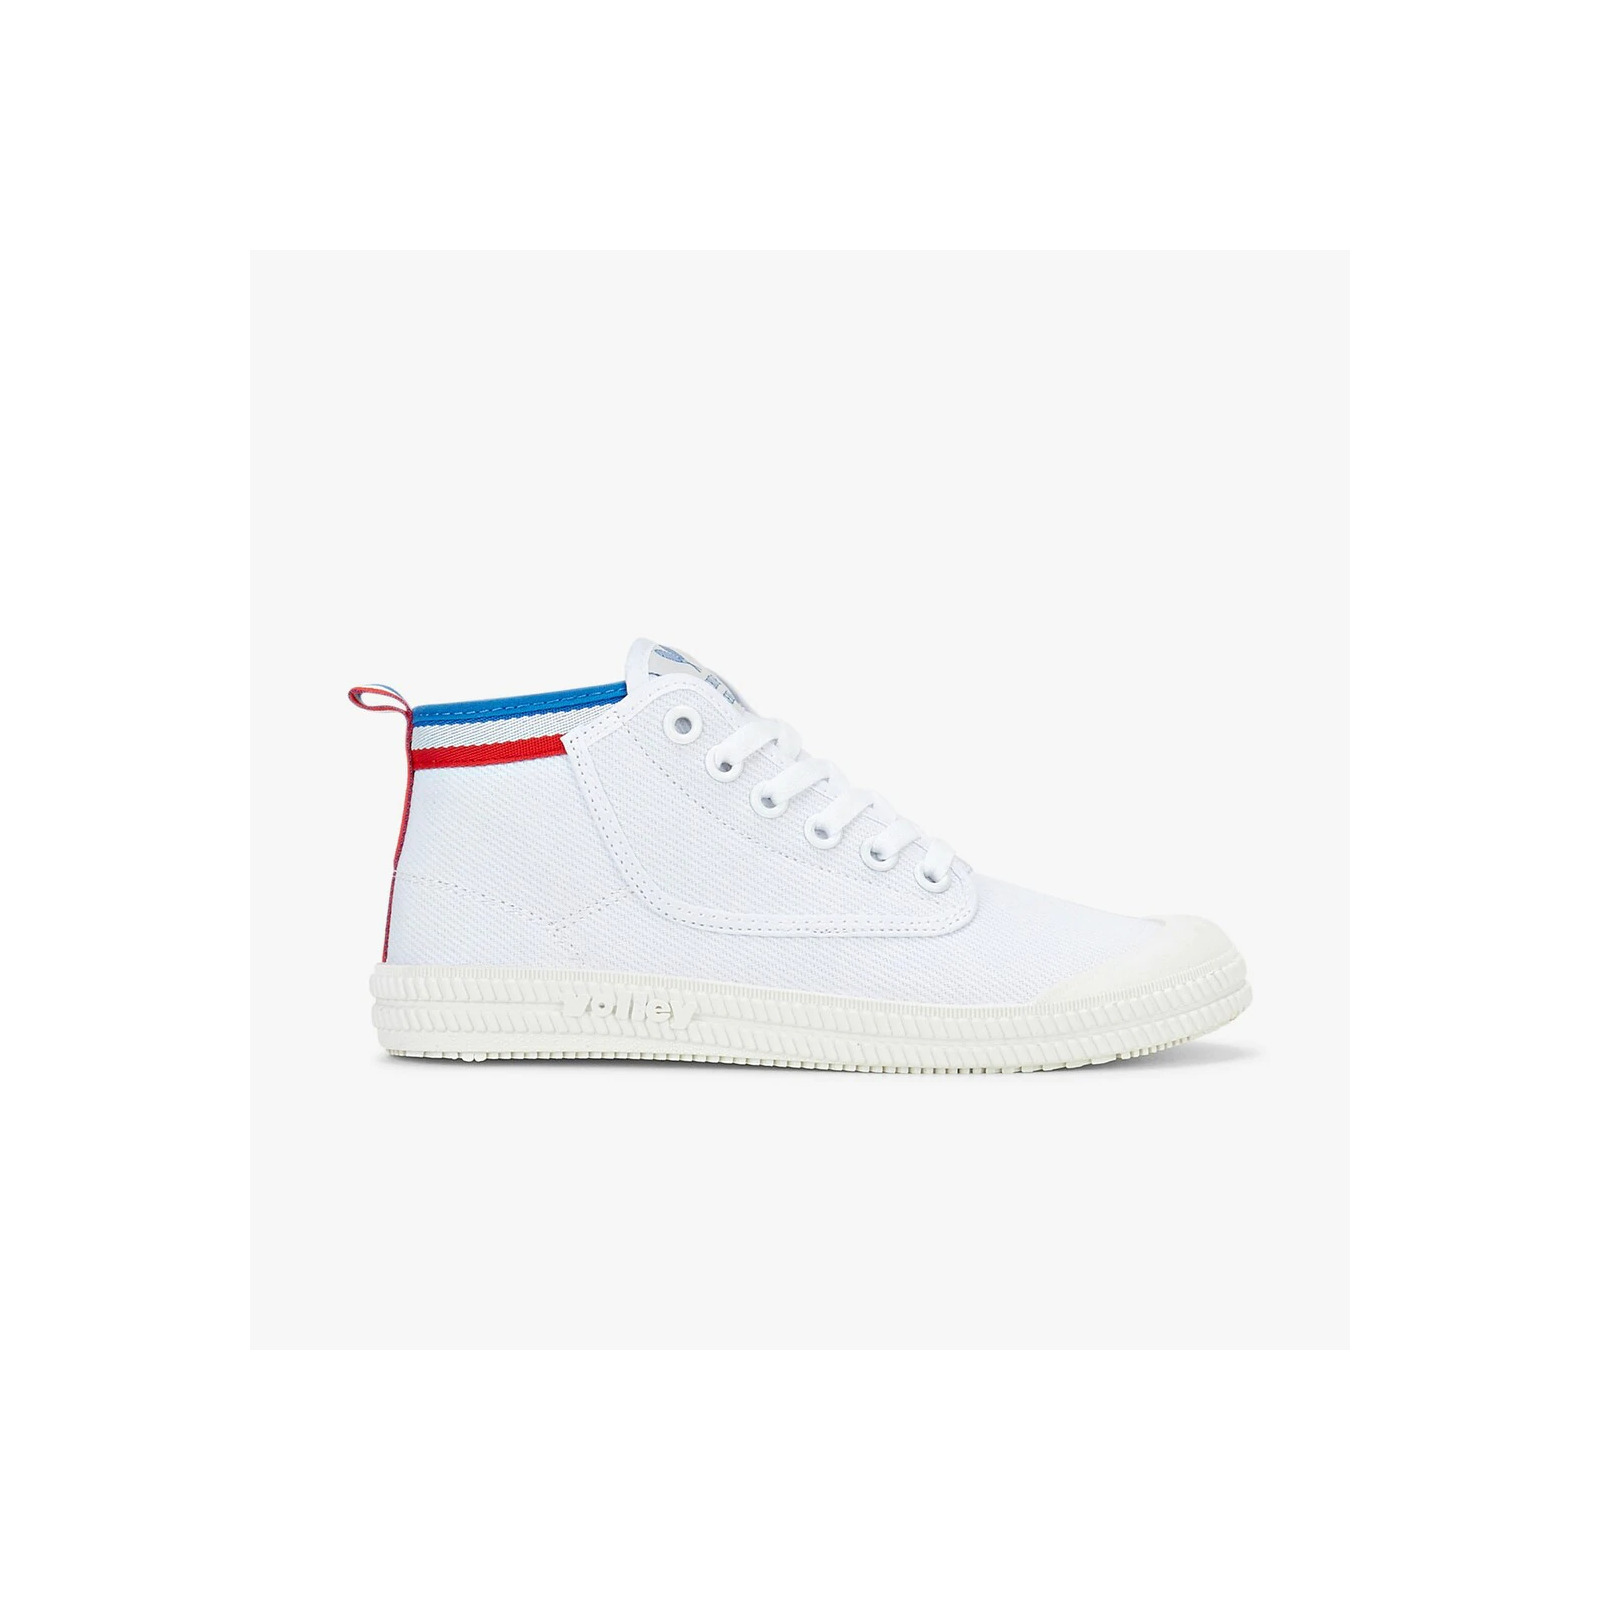 VOLLEY HERITAGE HIGH LEAP SHOES BLUE/WHITE/RED